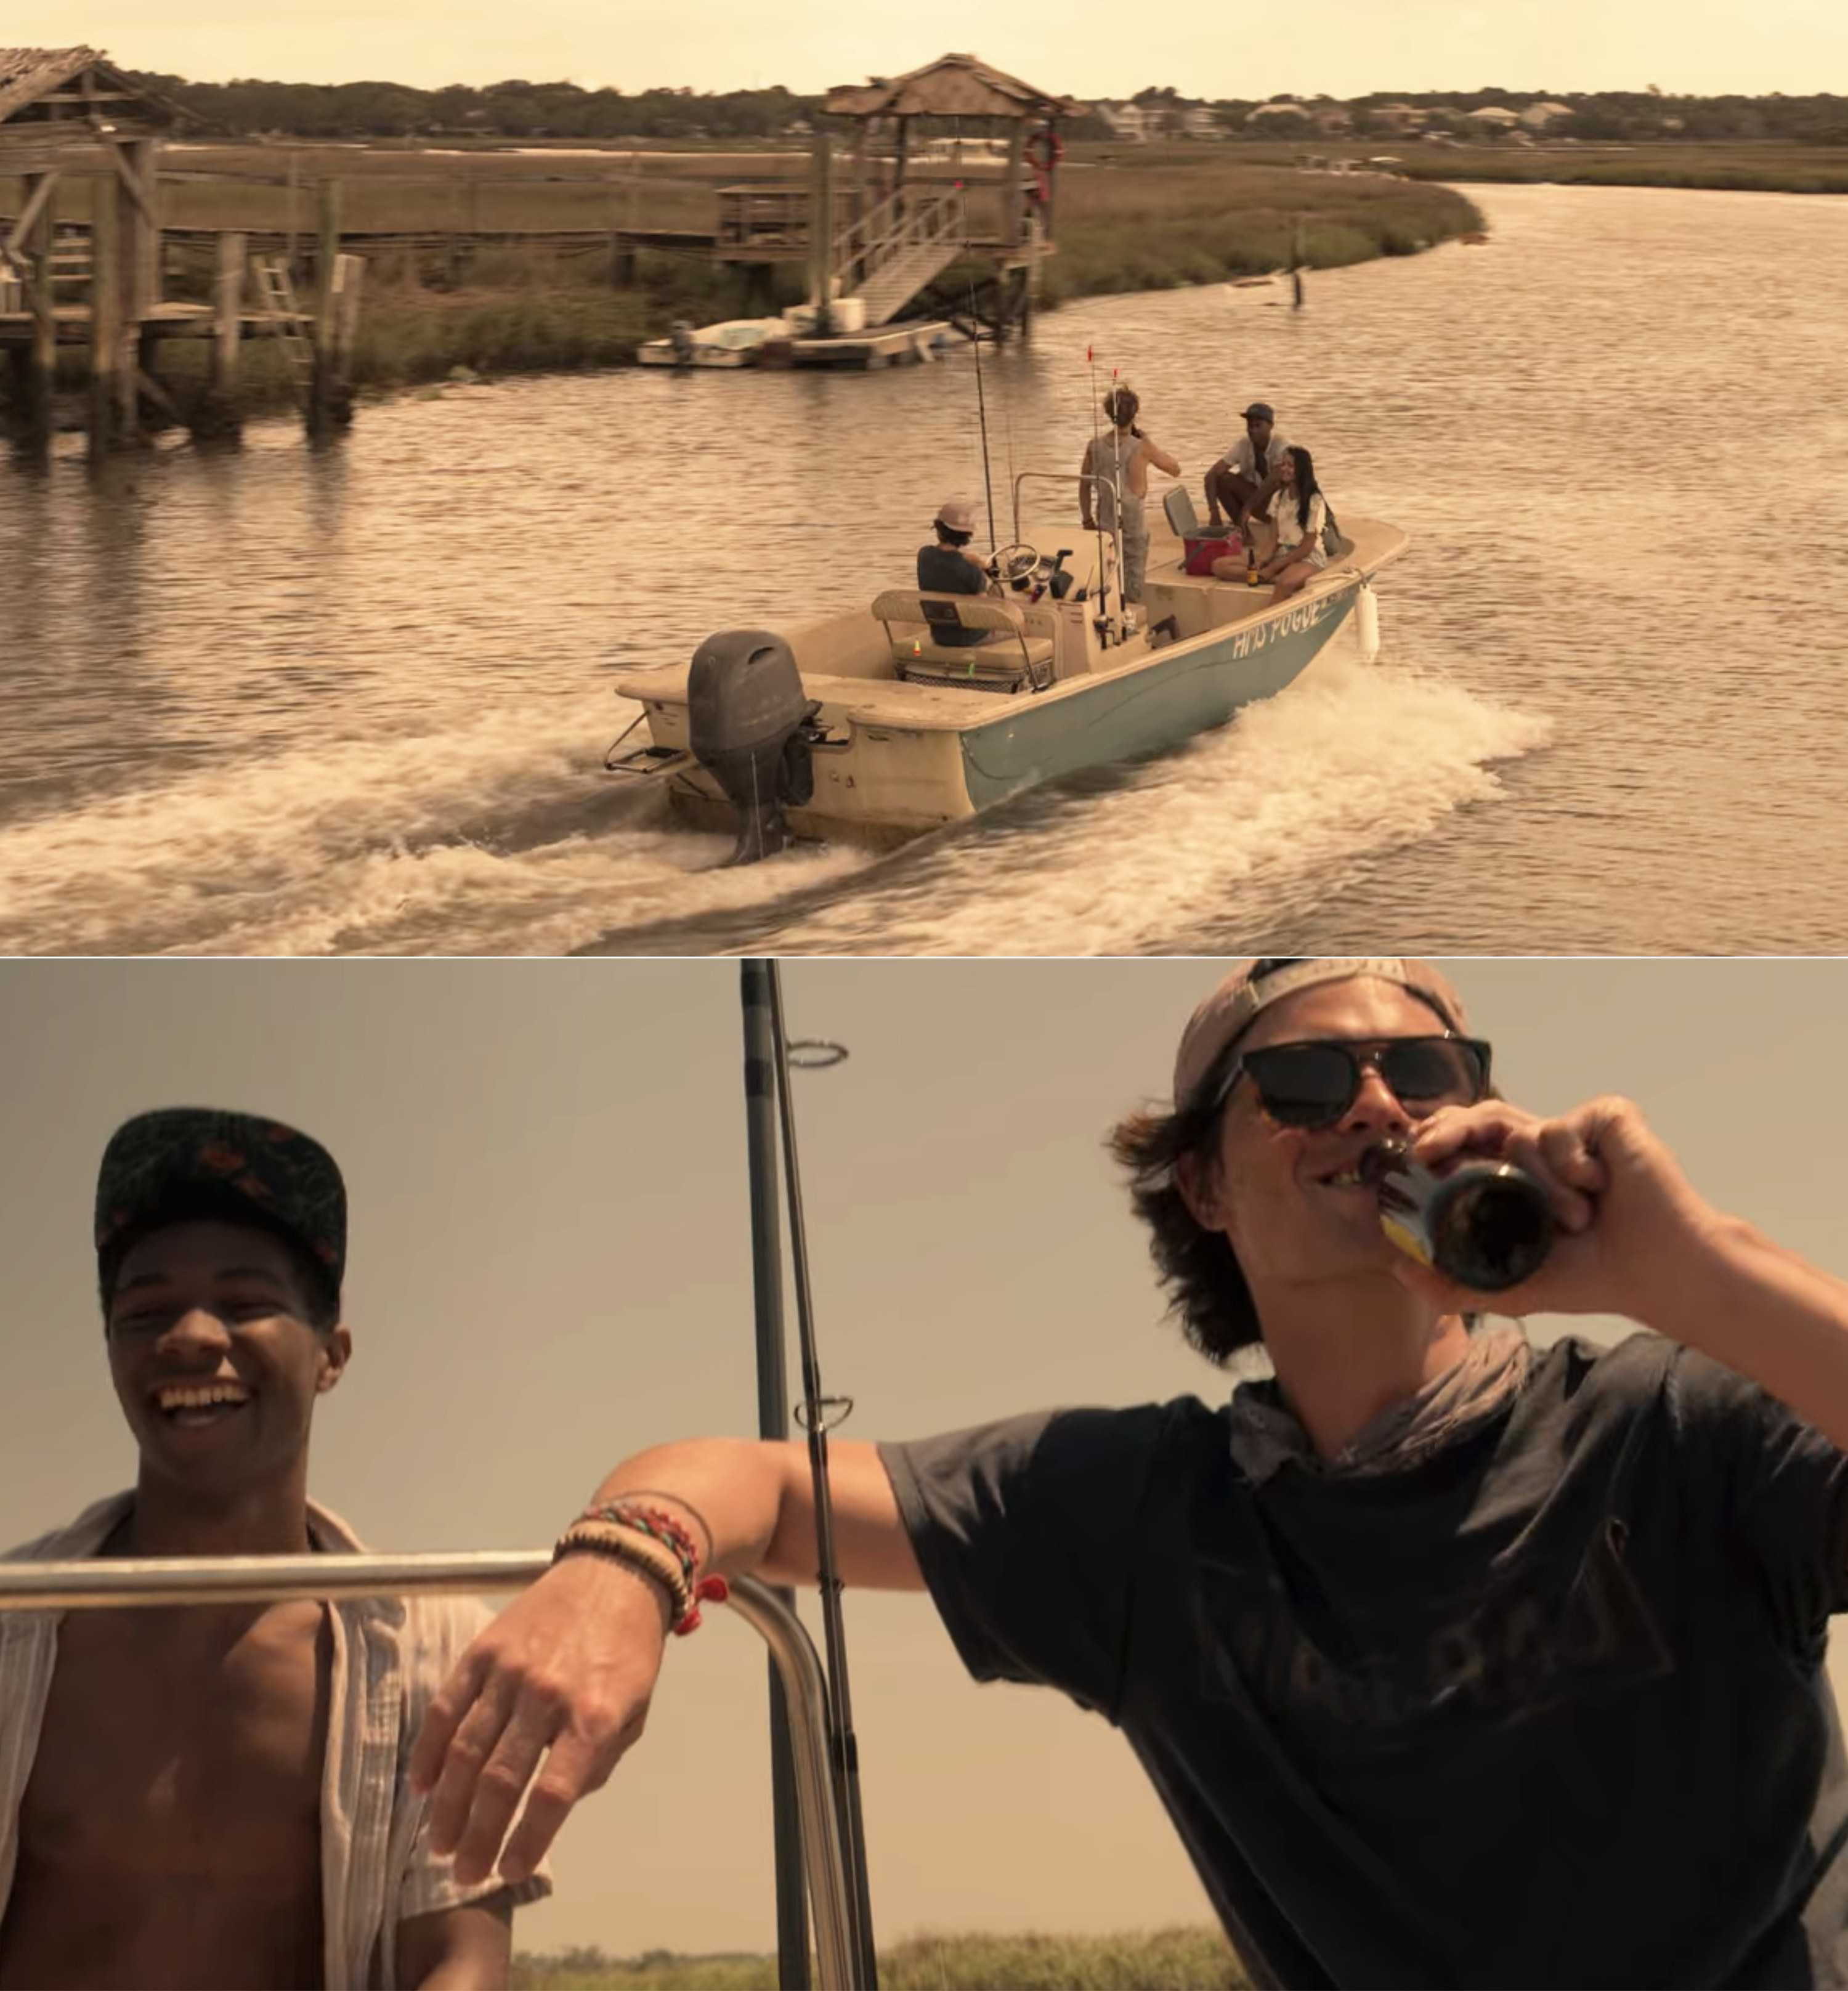 The Pogues on their boat and John B. drinking a beer